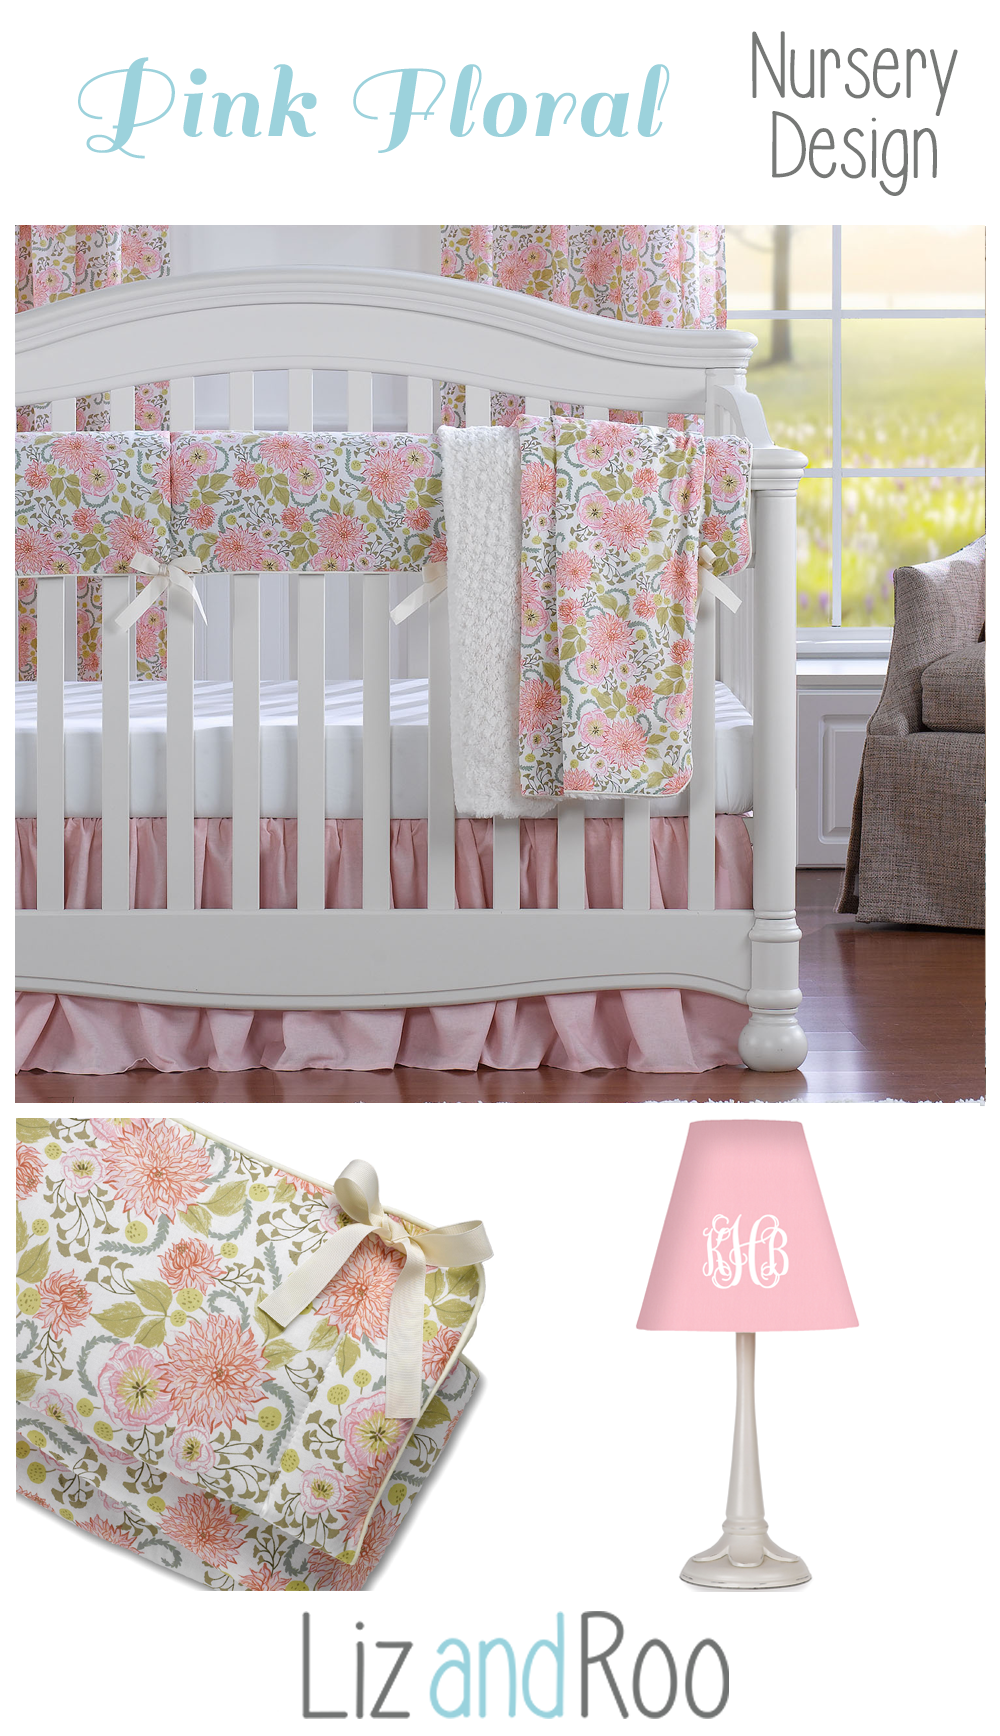 Floral Nursery Bedding Stunning Pink Floral Bumperless Crib Bedding  Baby Bedding Floral Nursery Design Inspiration